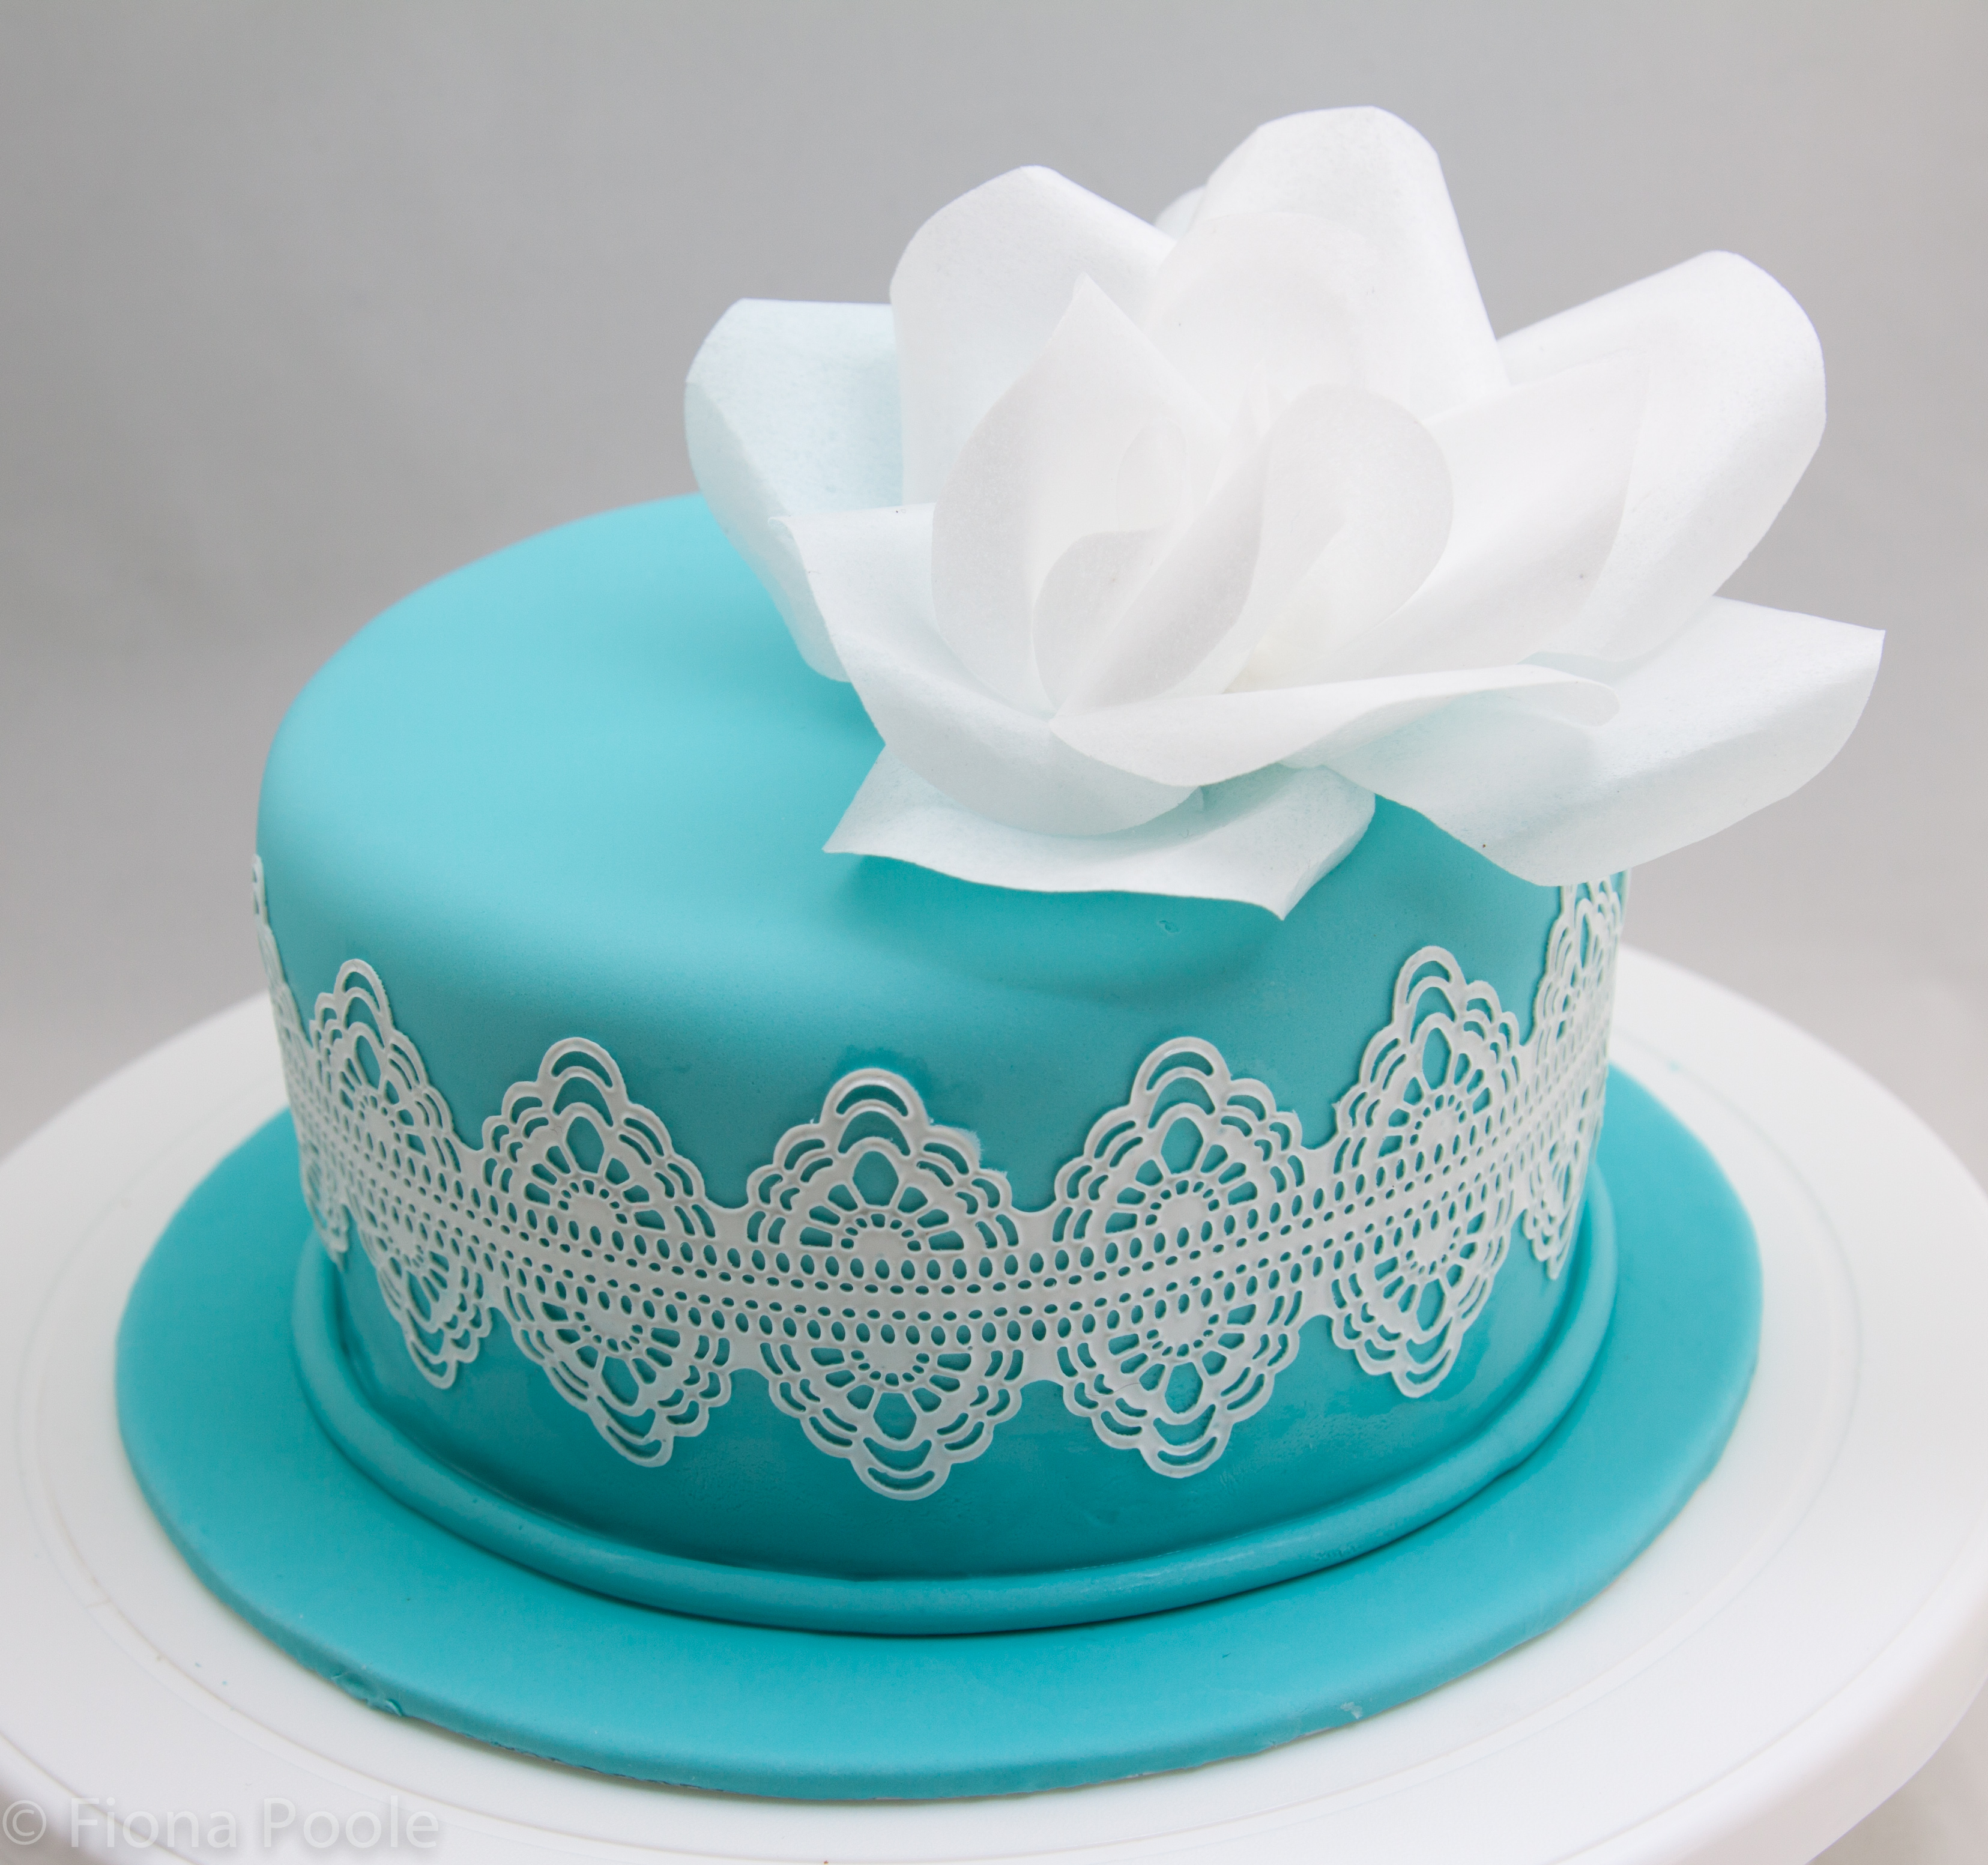 Cake Lace Amp Wafer Paper Fiona Poole